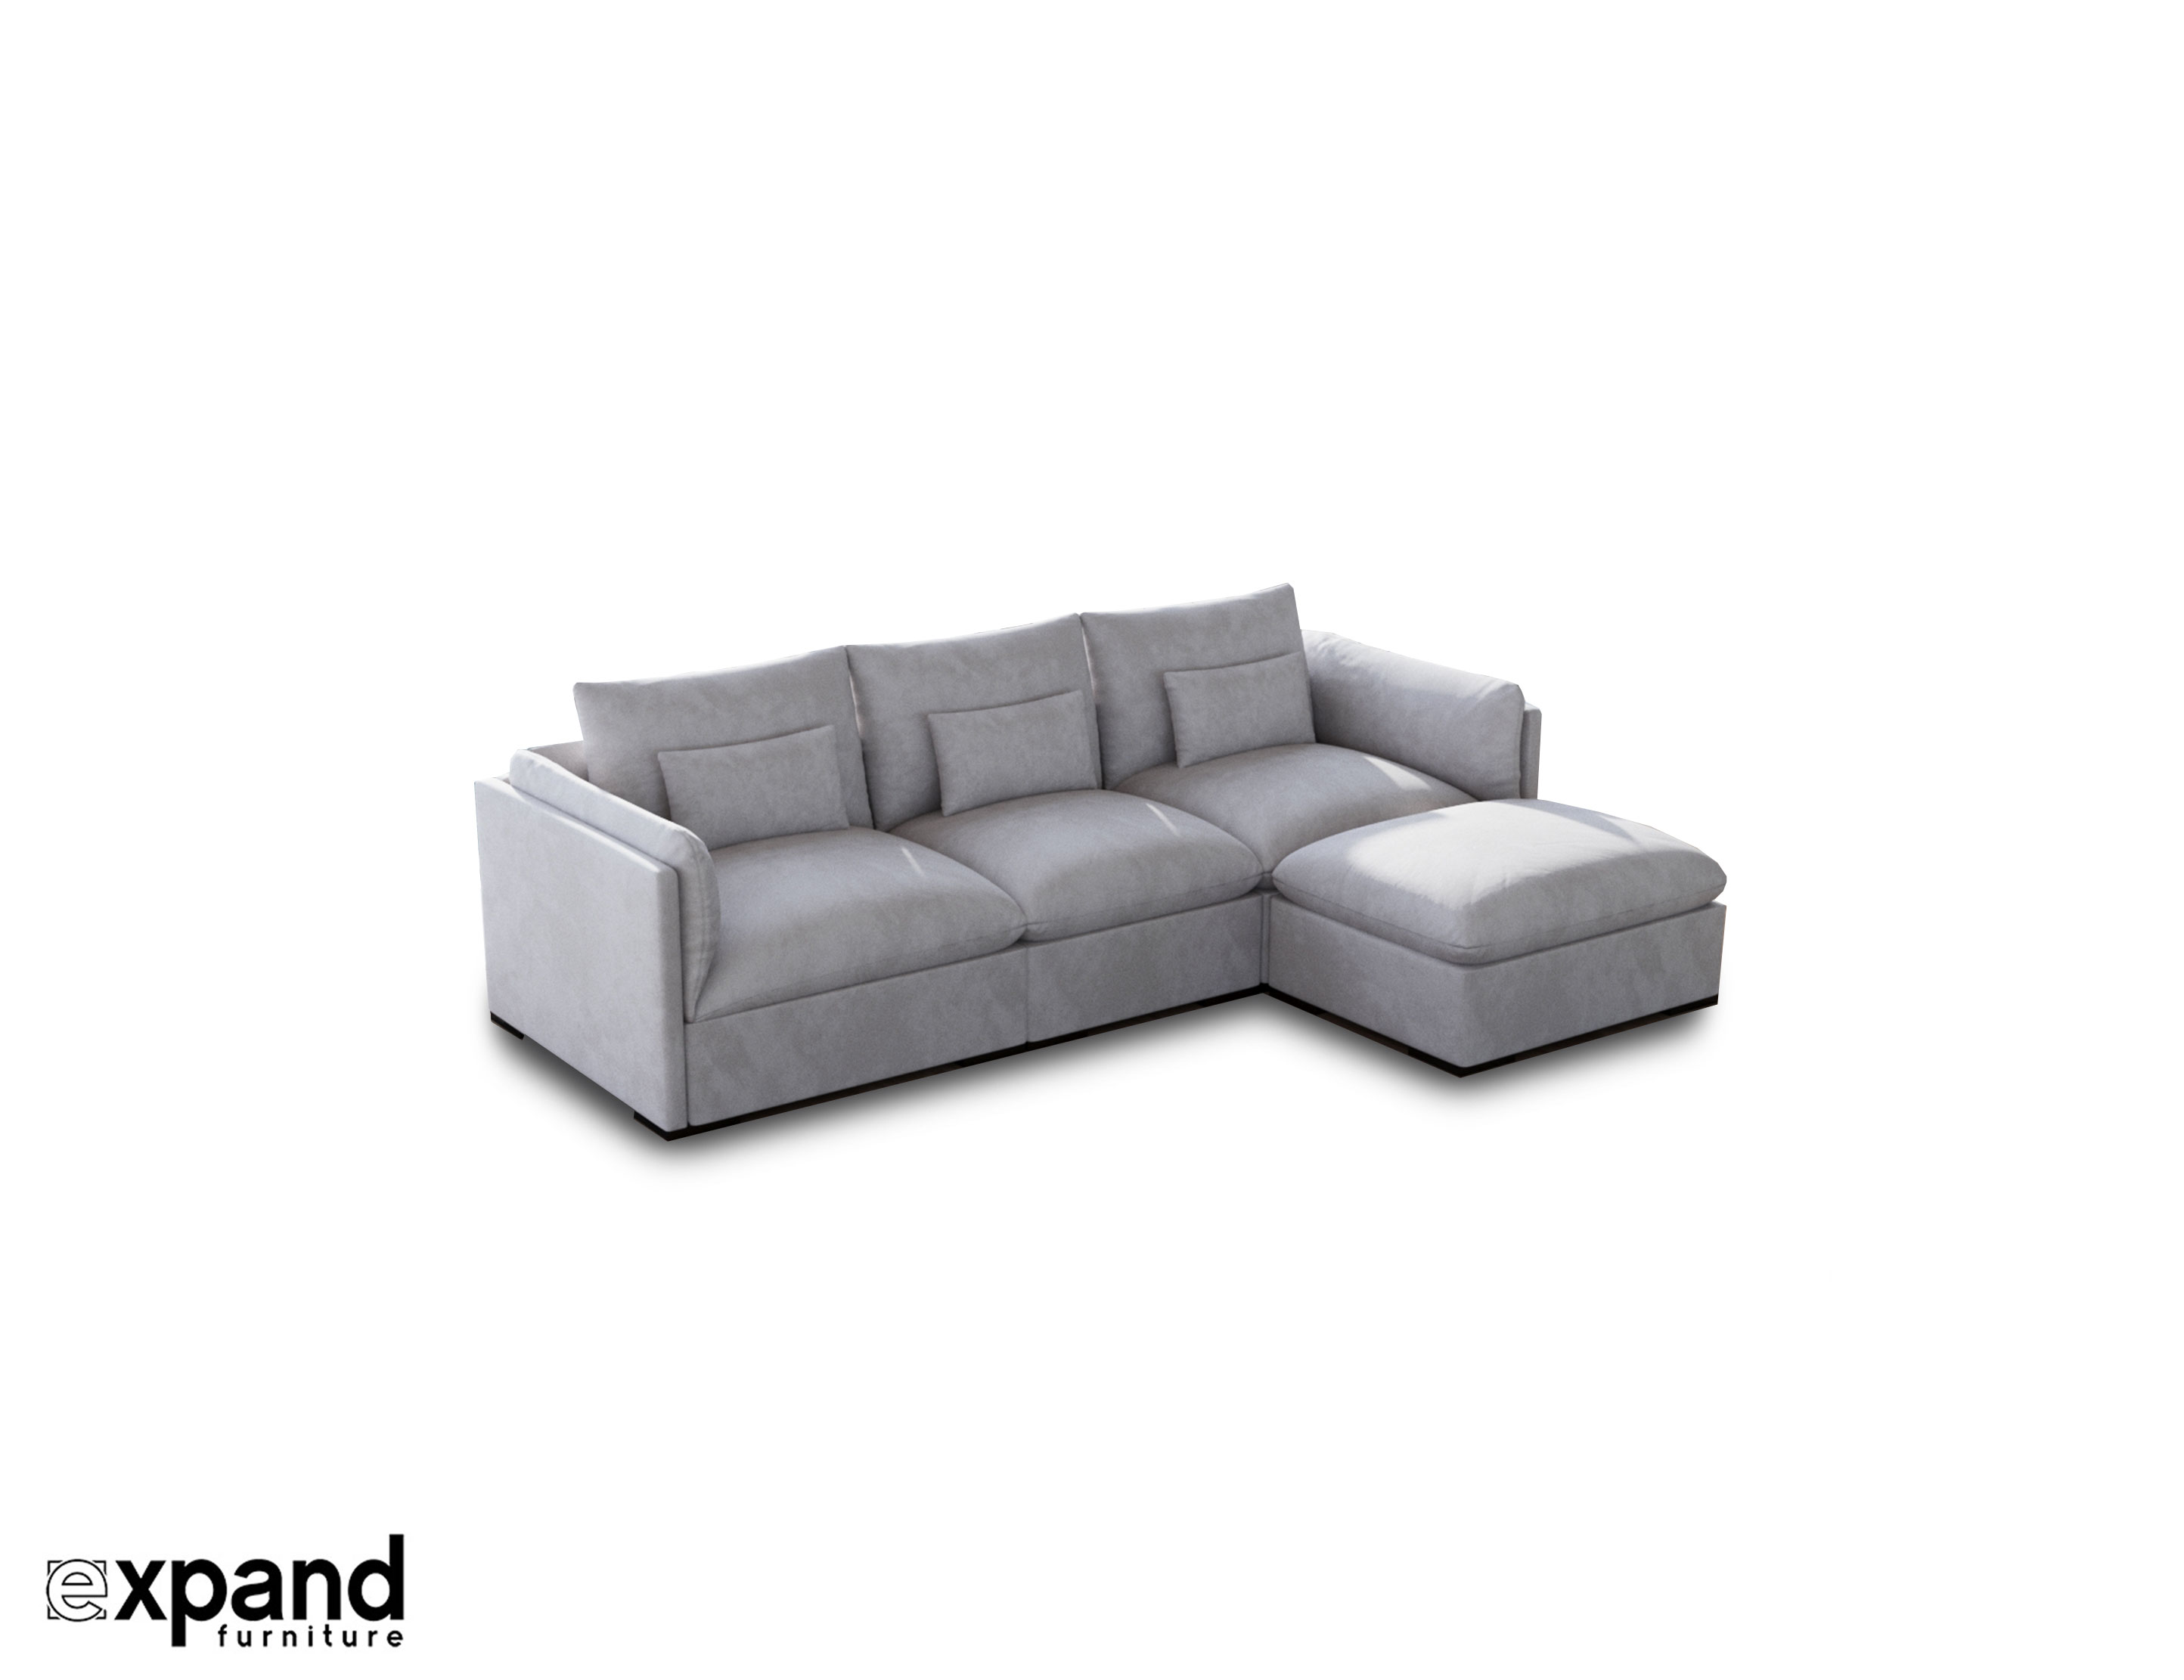 Adagio Luxury Sectional Modular Sofa Set Of 4 Expand